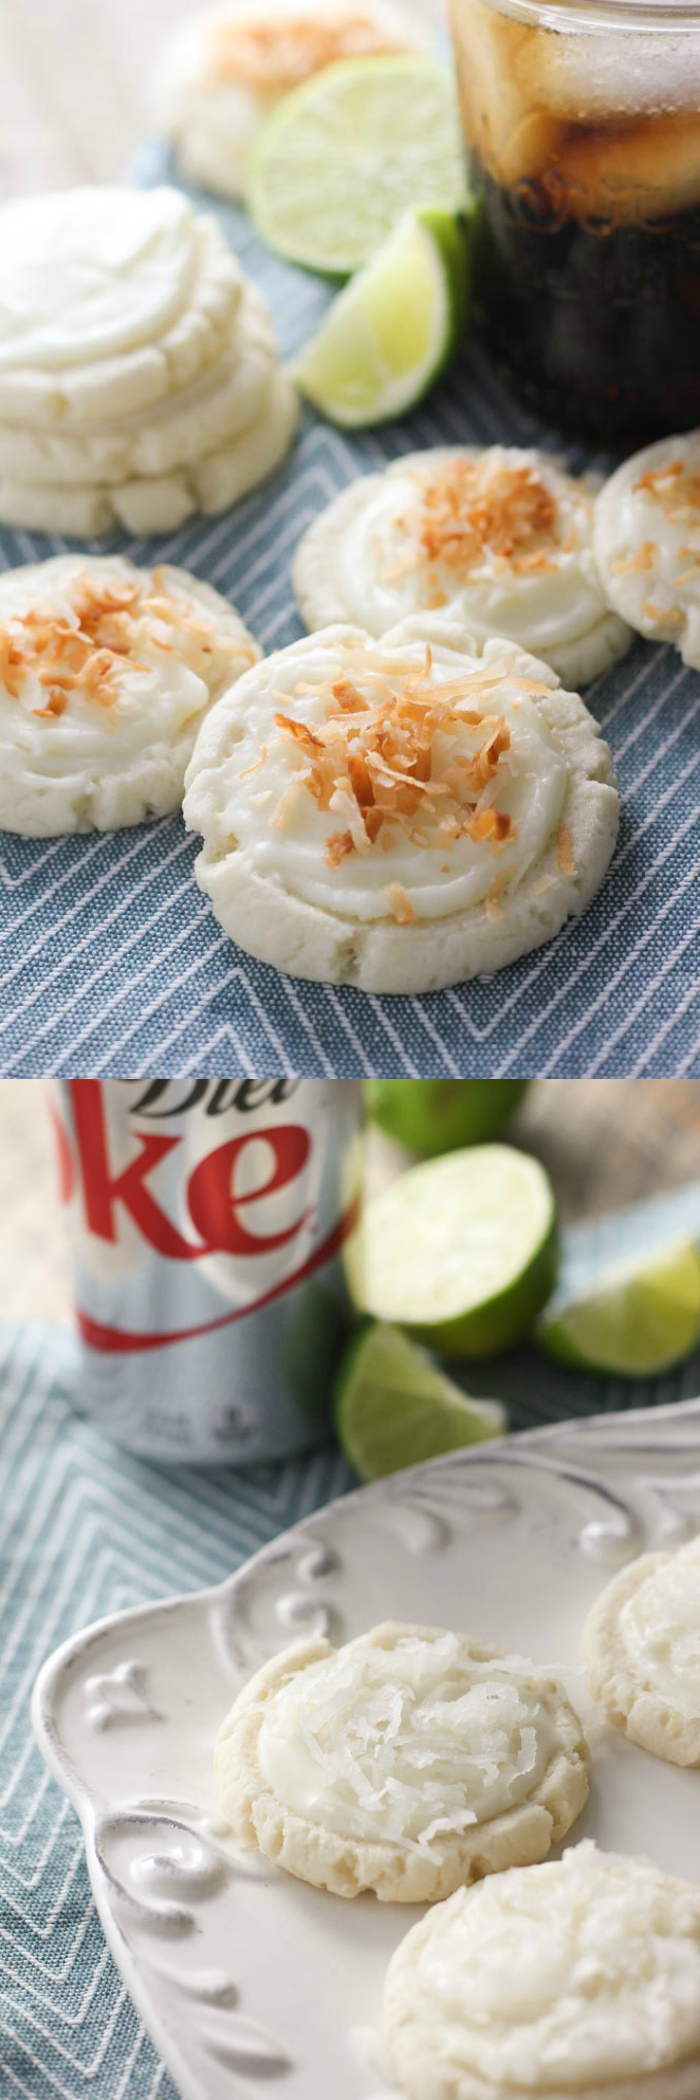 Coconut & Lime Swig Style Sugar Cookie